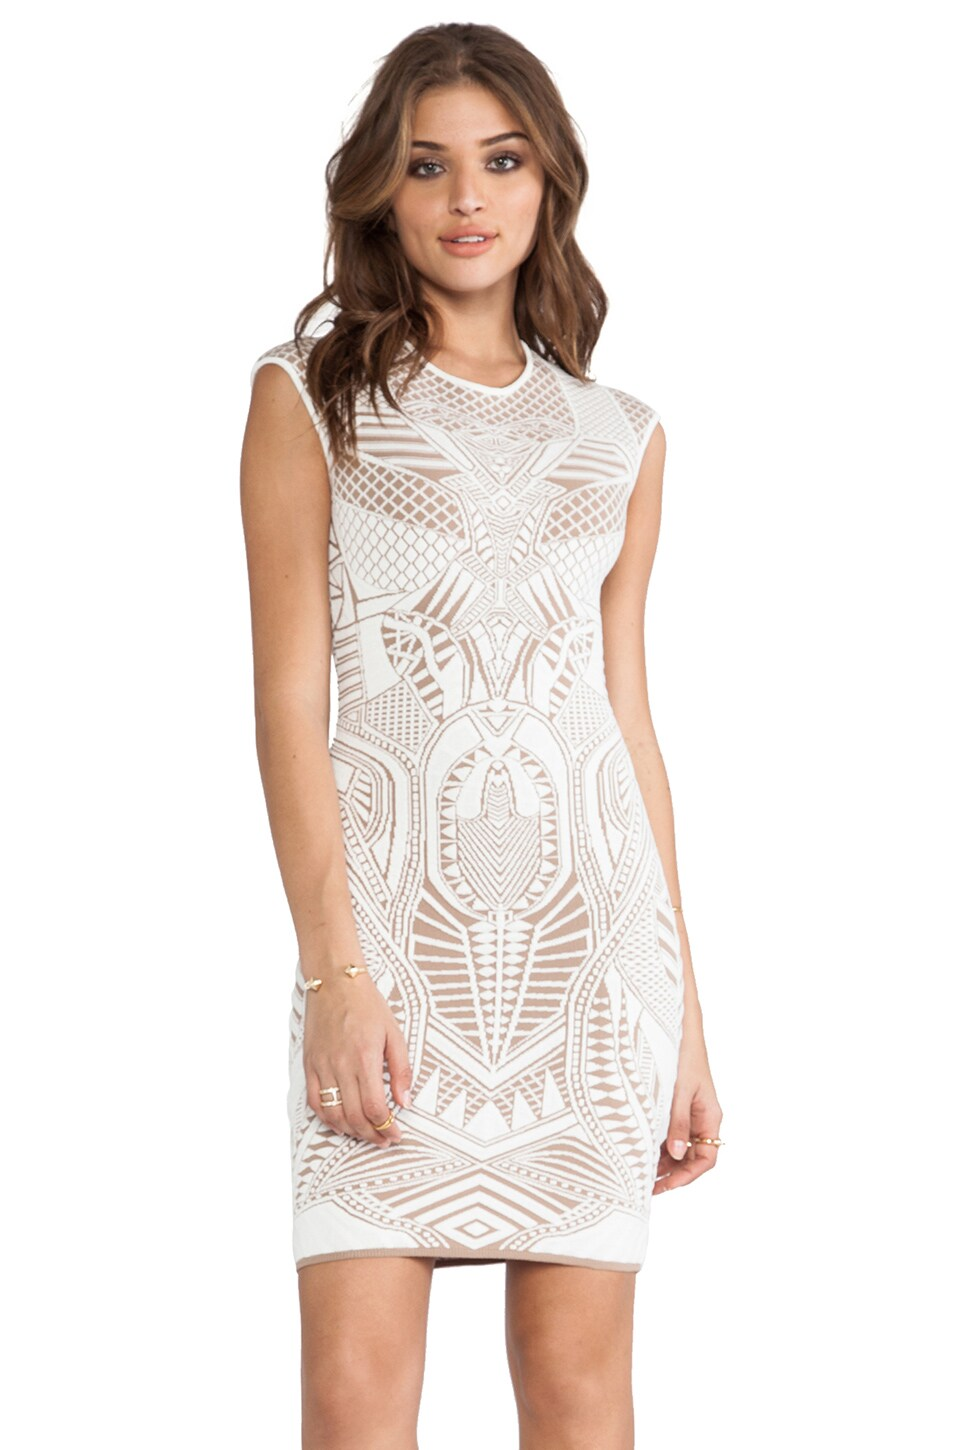 RVN Armor 3D Jacq Dress in White & Nude